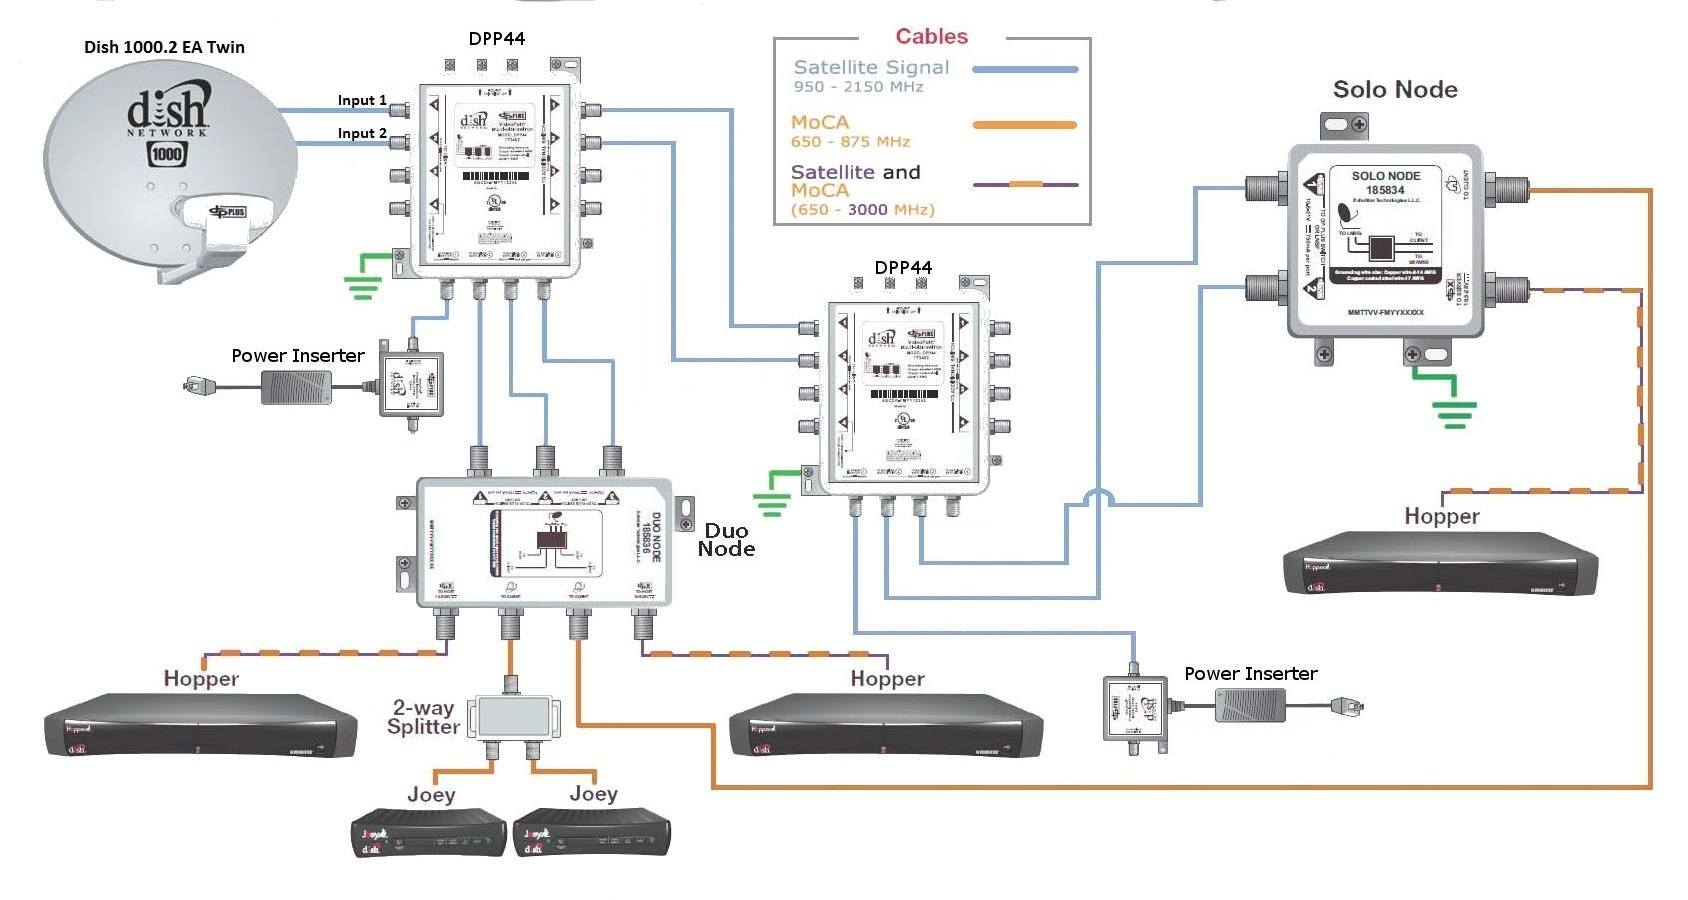 hopper wiring diagram dish network hopper installation \u2022 wiring  at alyssarenee.co